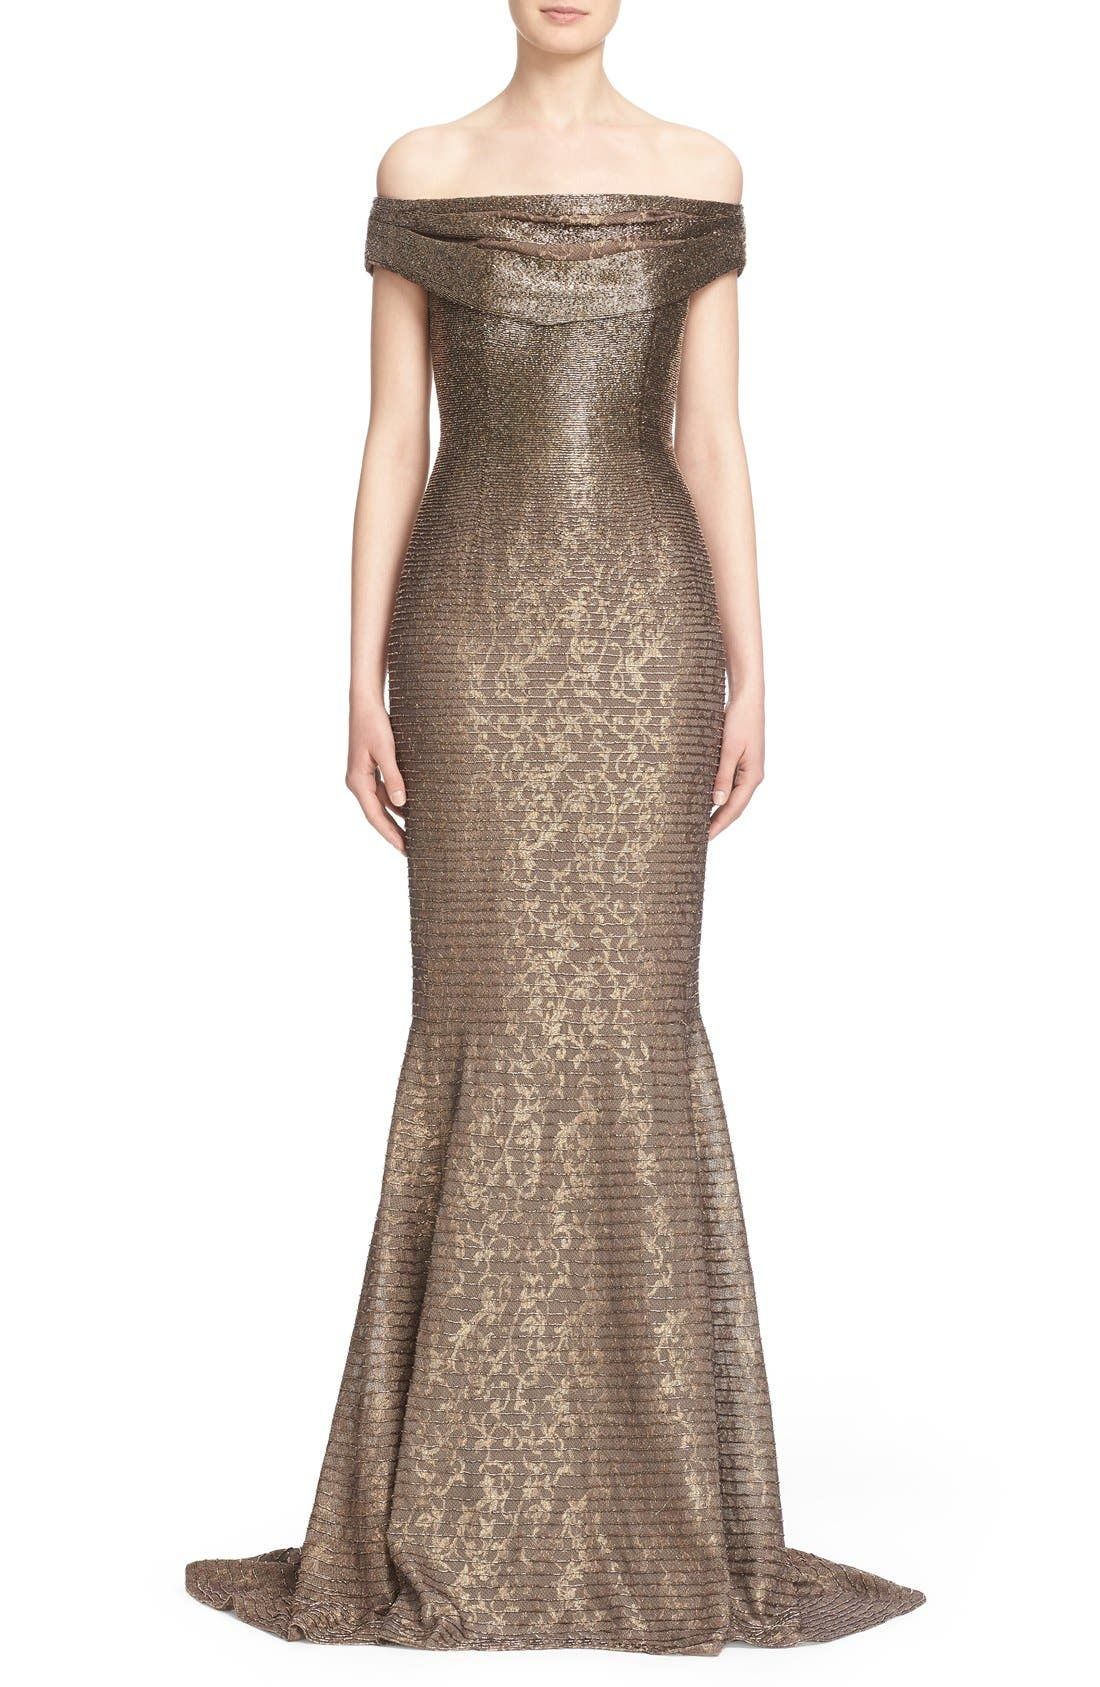 CARMEN MARC VALVO COUTURE Beaded Off the Shoulder